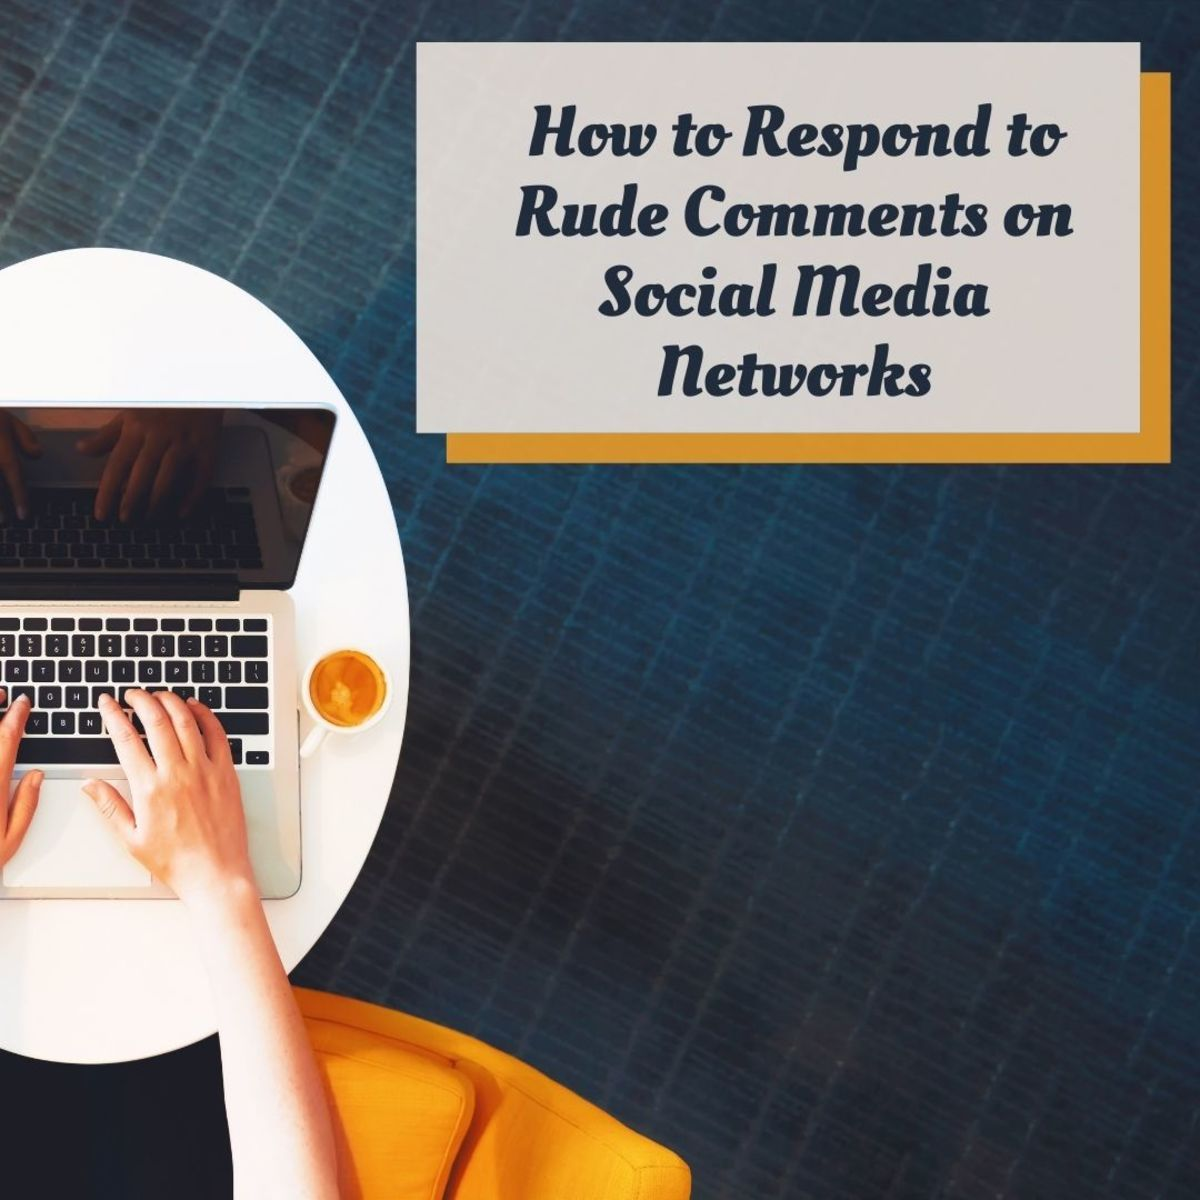 How to respond to rude comments on Facebook and other social media networks